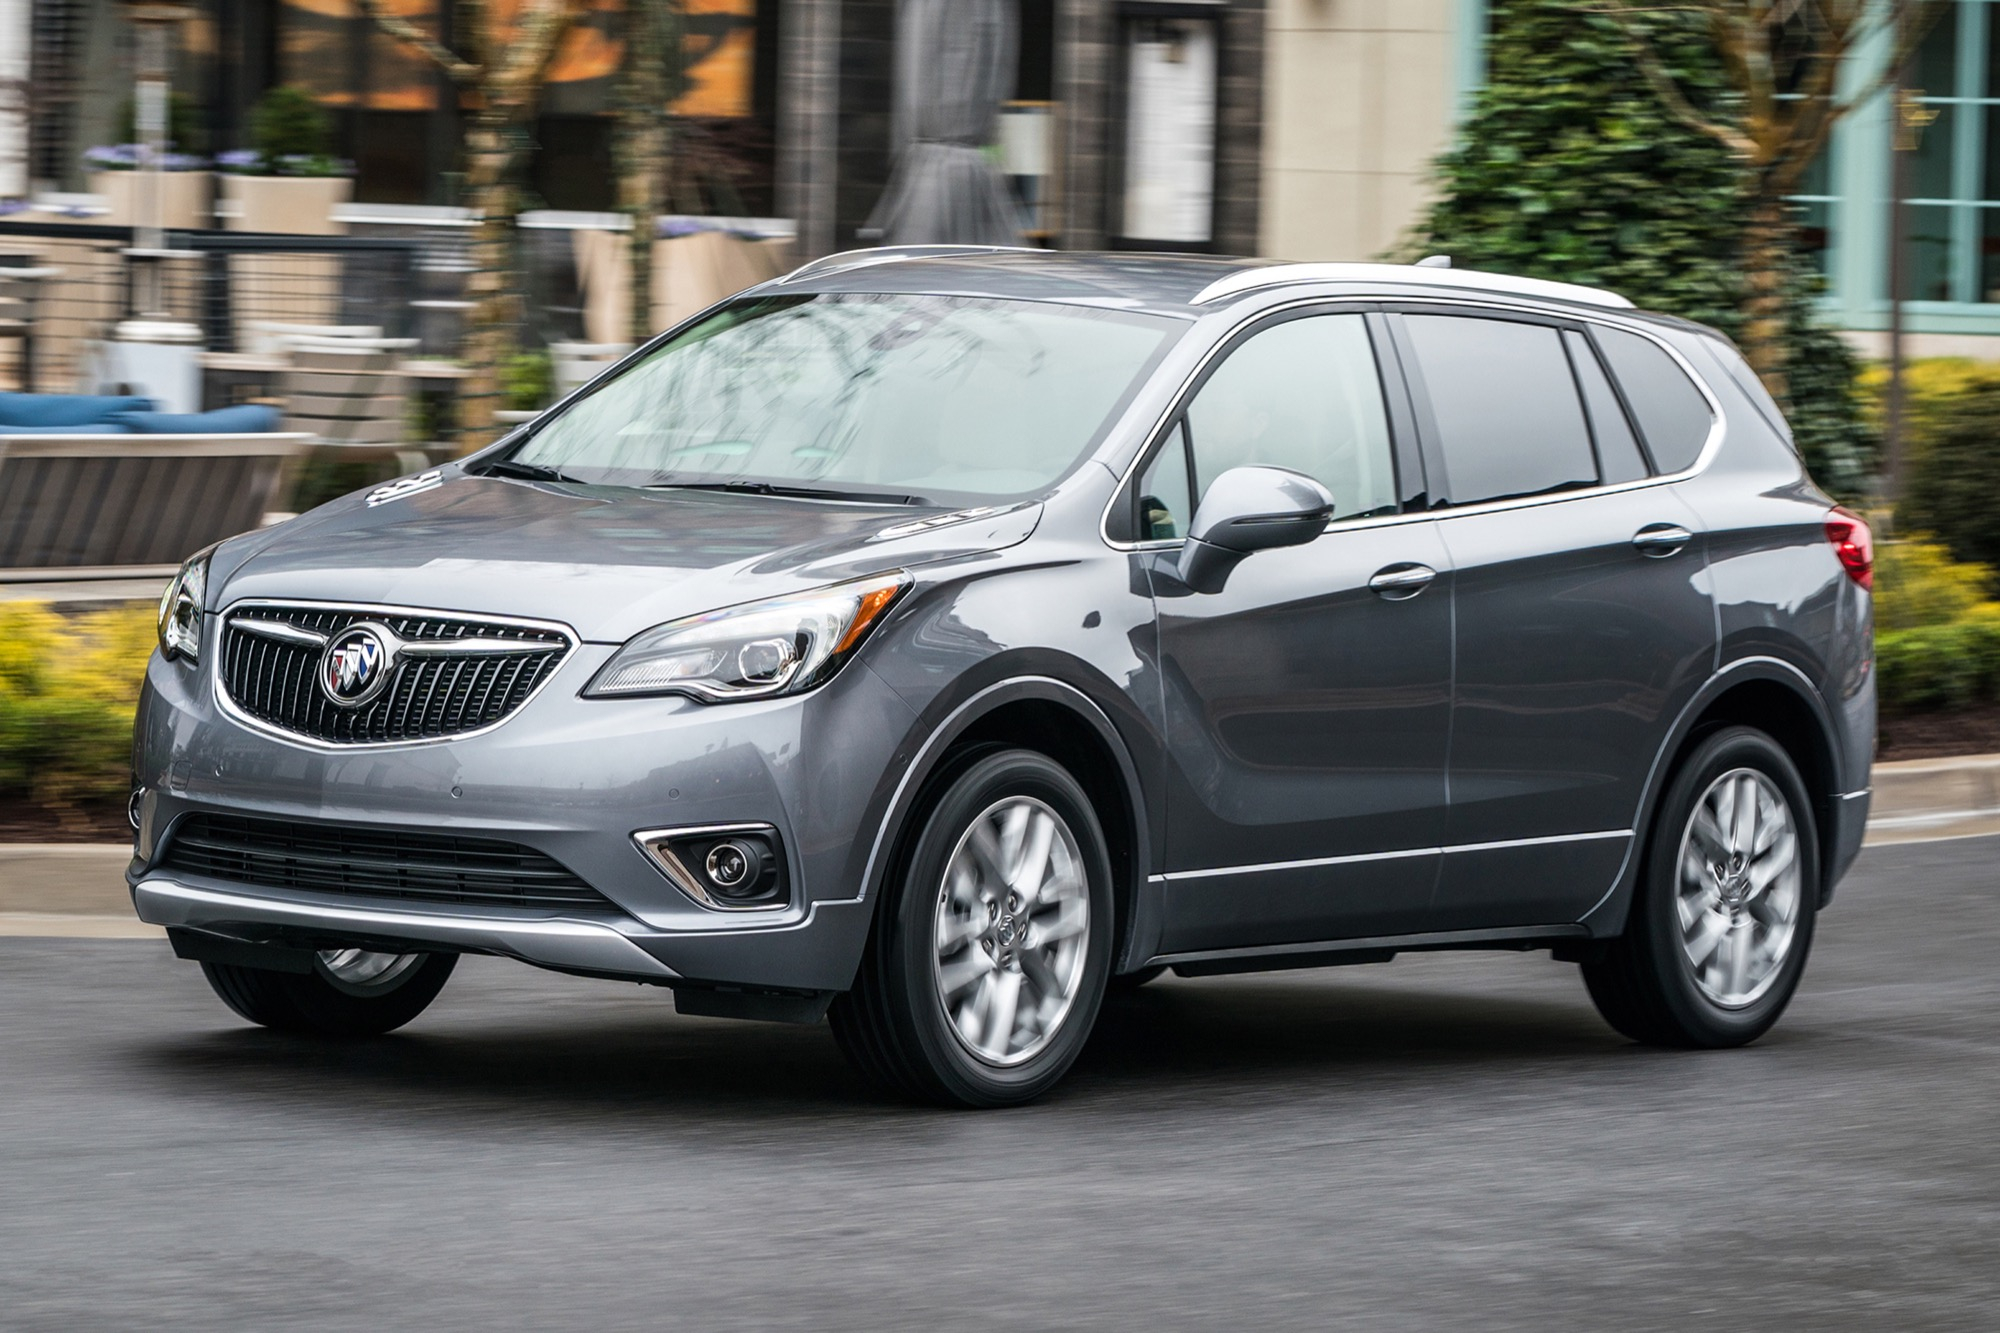 2019 Buick Envision Interactive Questions & Answers | Gm Is The 2022 Buick Envision Flat Towable